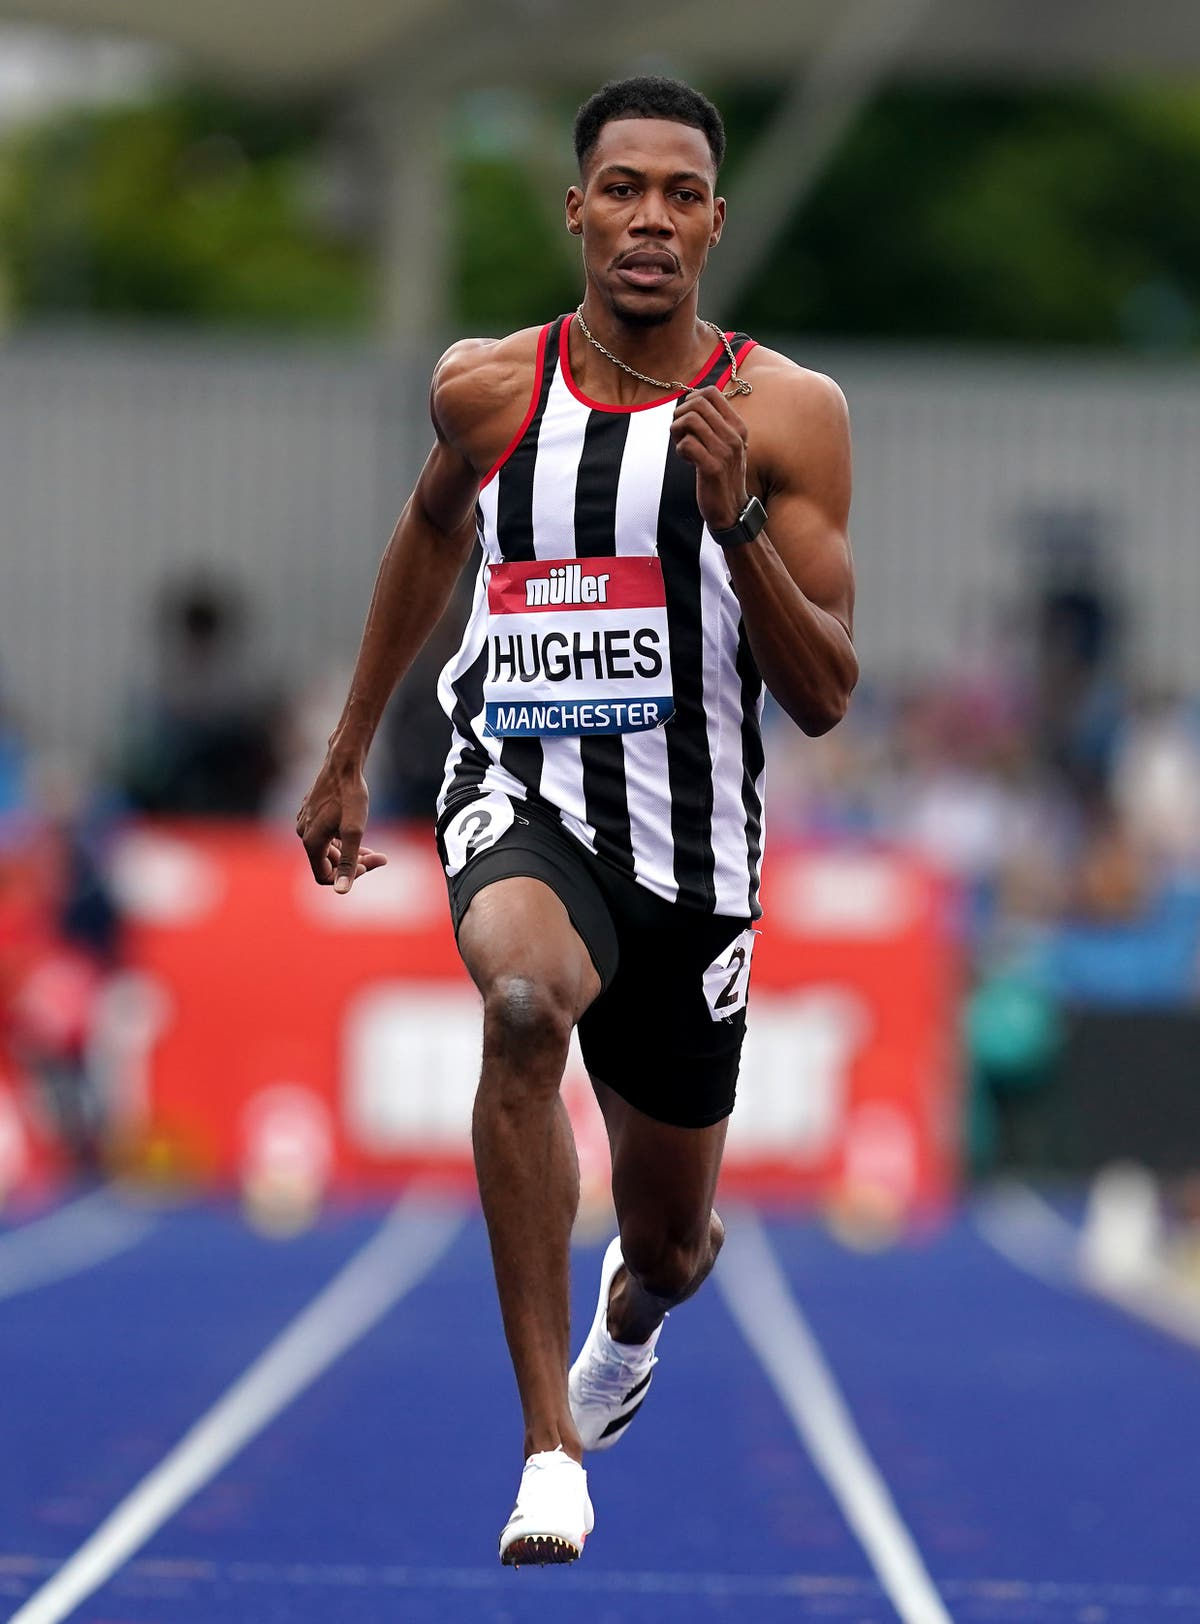 Zharnel Hughes eager to prove he can match world's best in 100 metres